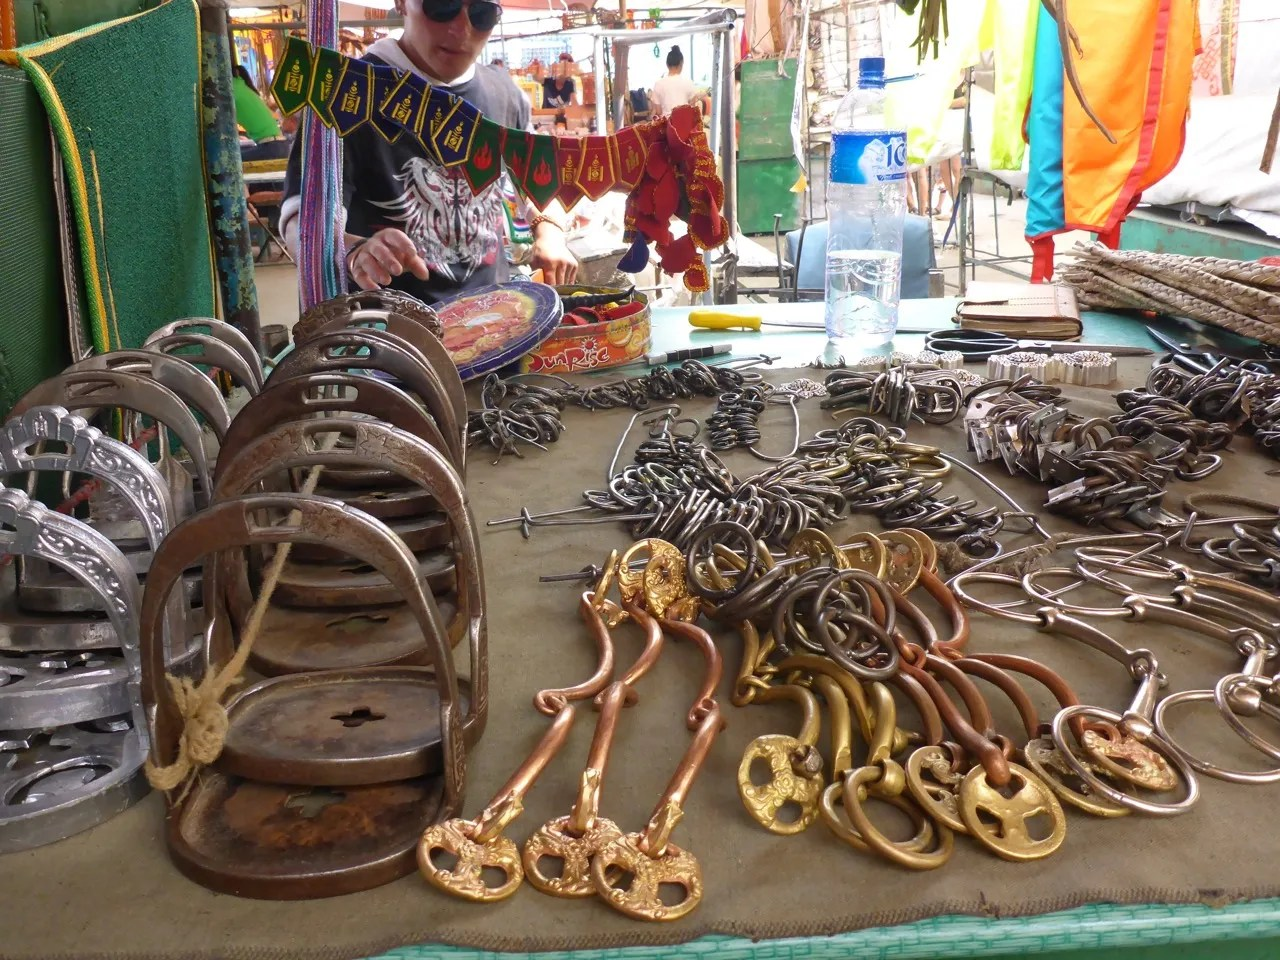 Tack at the black market in UlaanBataar